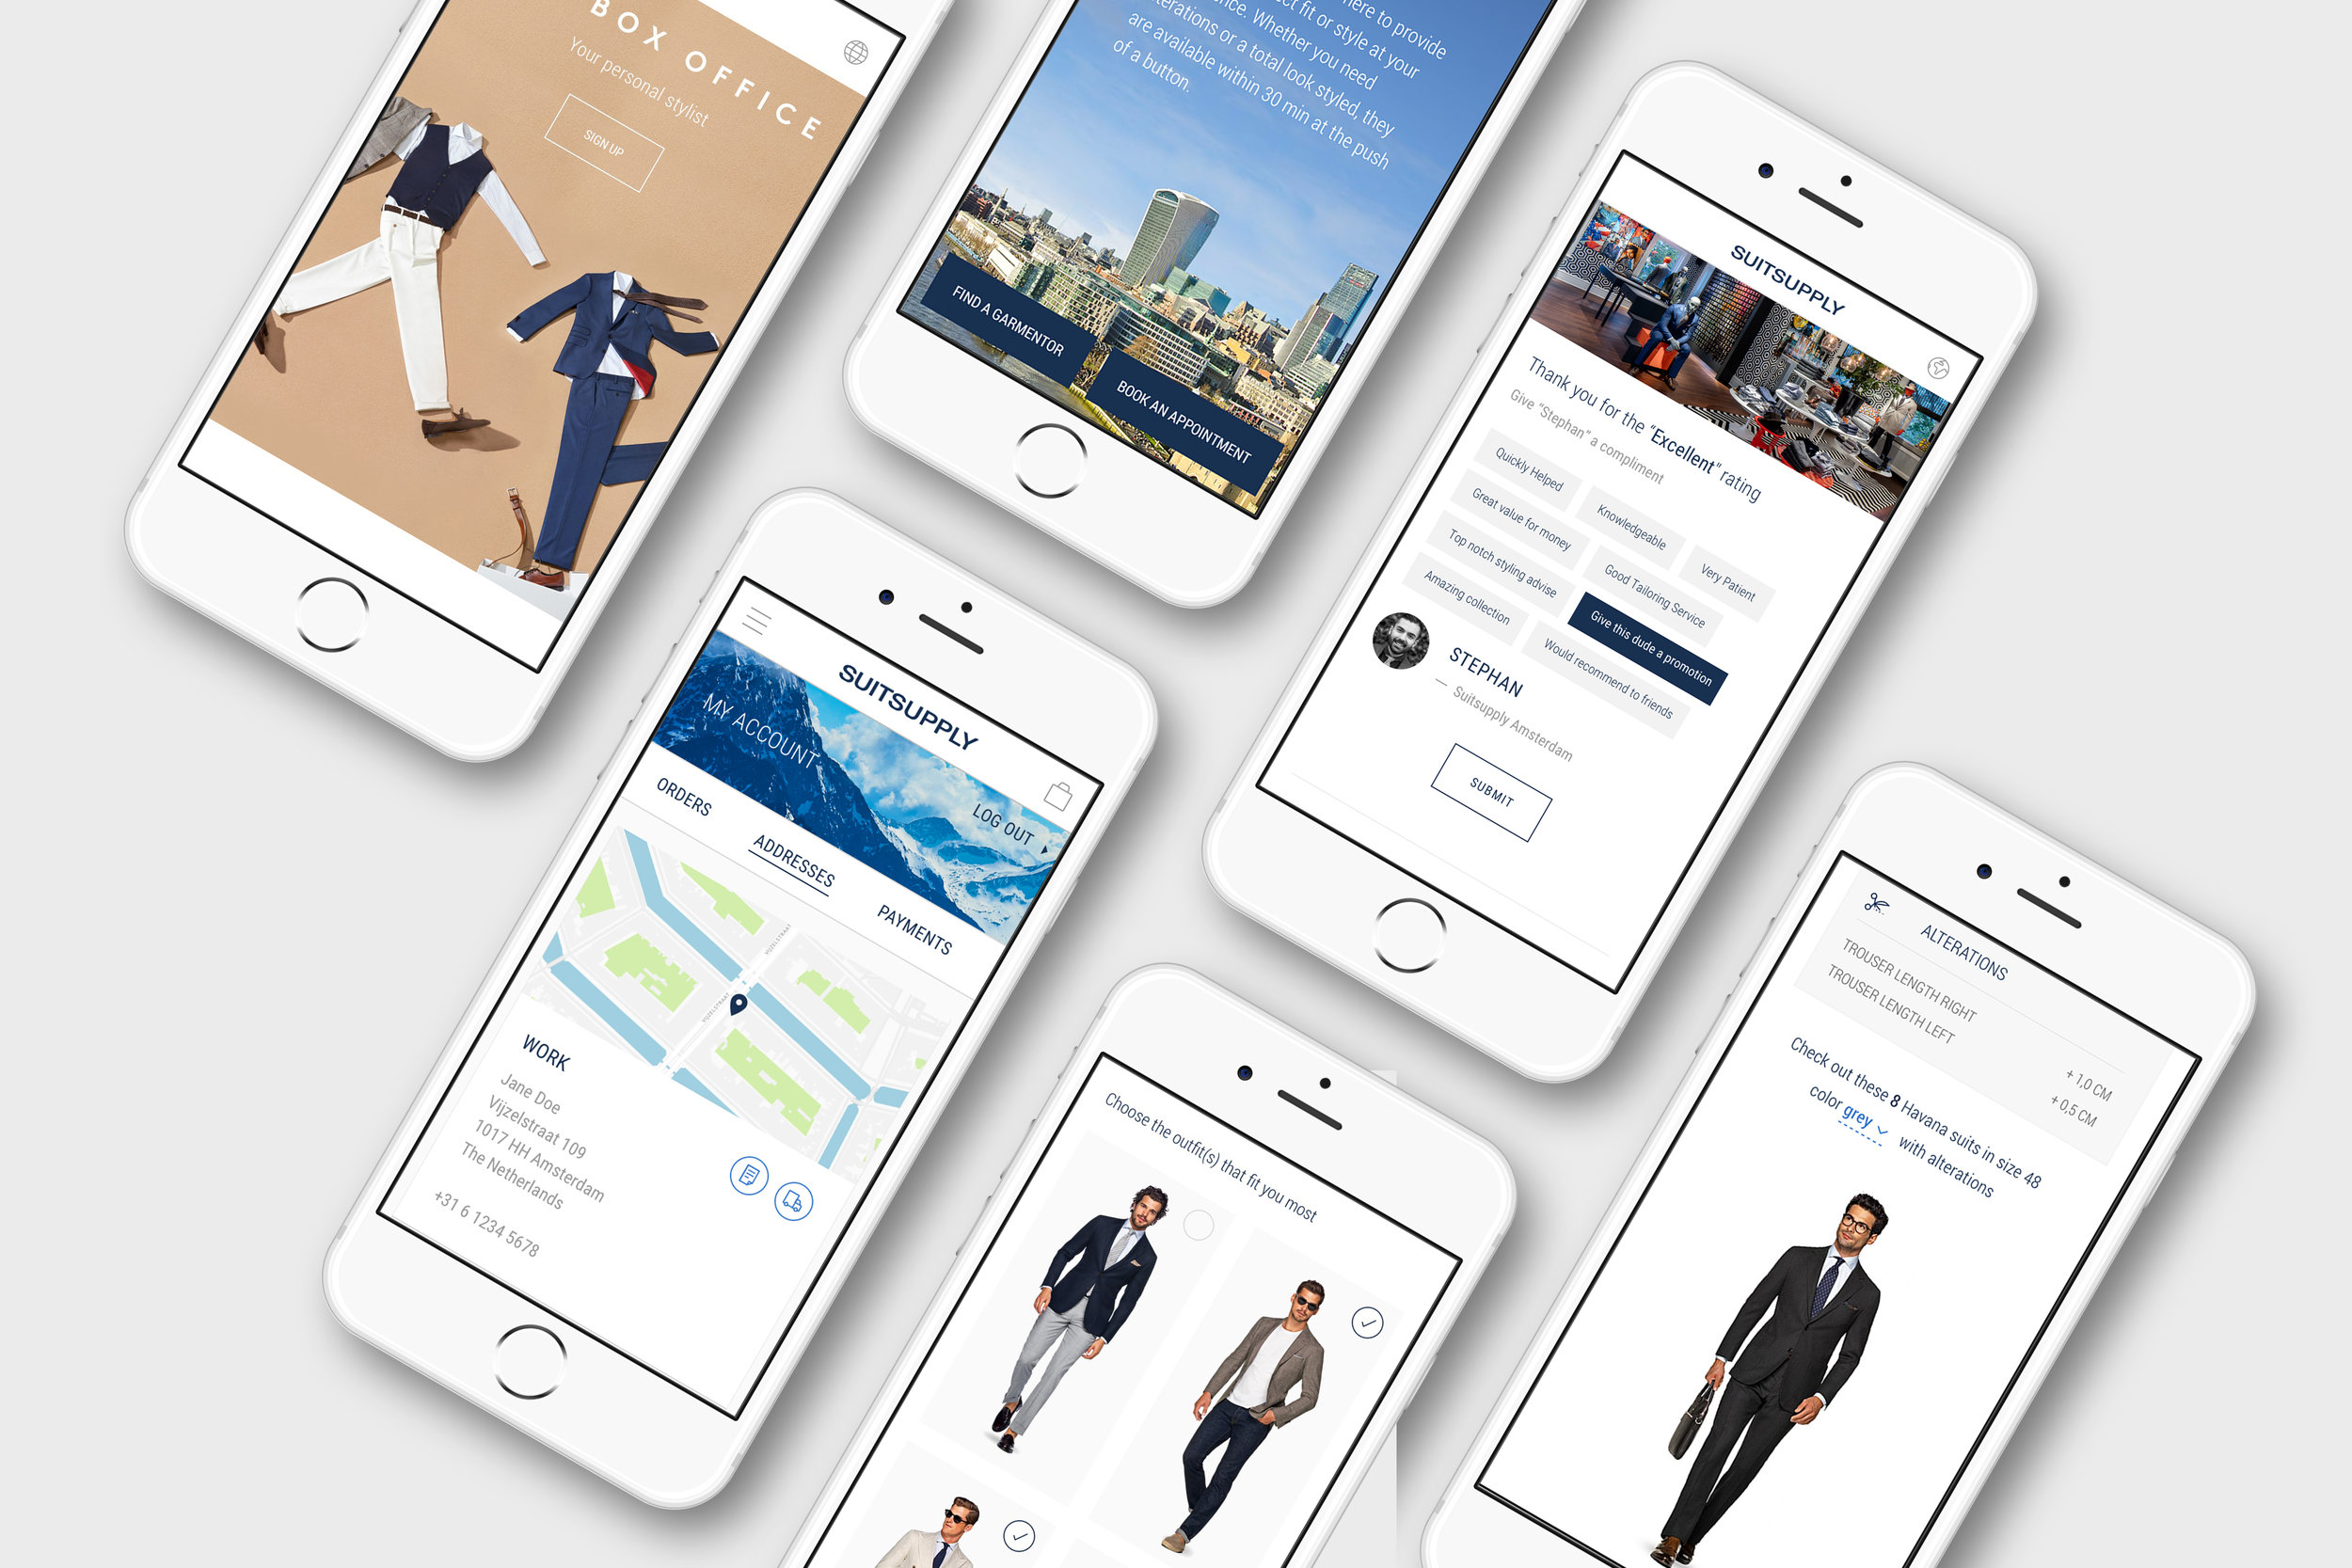 Several features for Suitsupply; Online alterations, personal shopping.